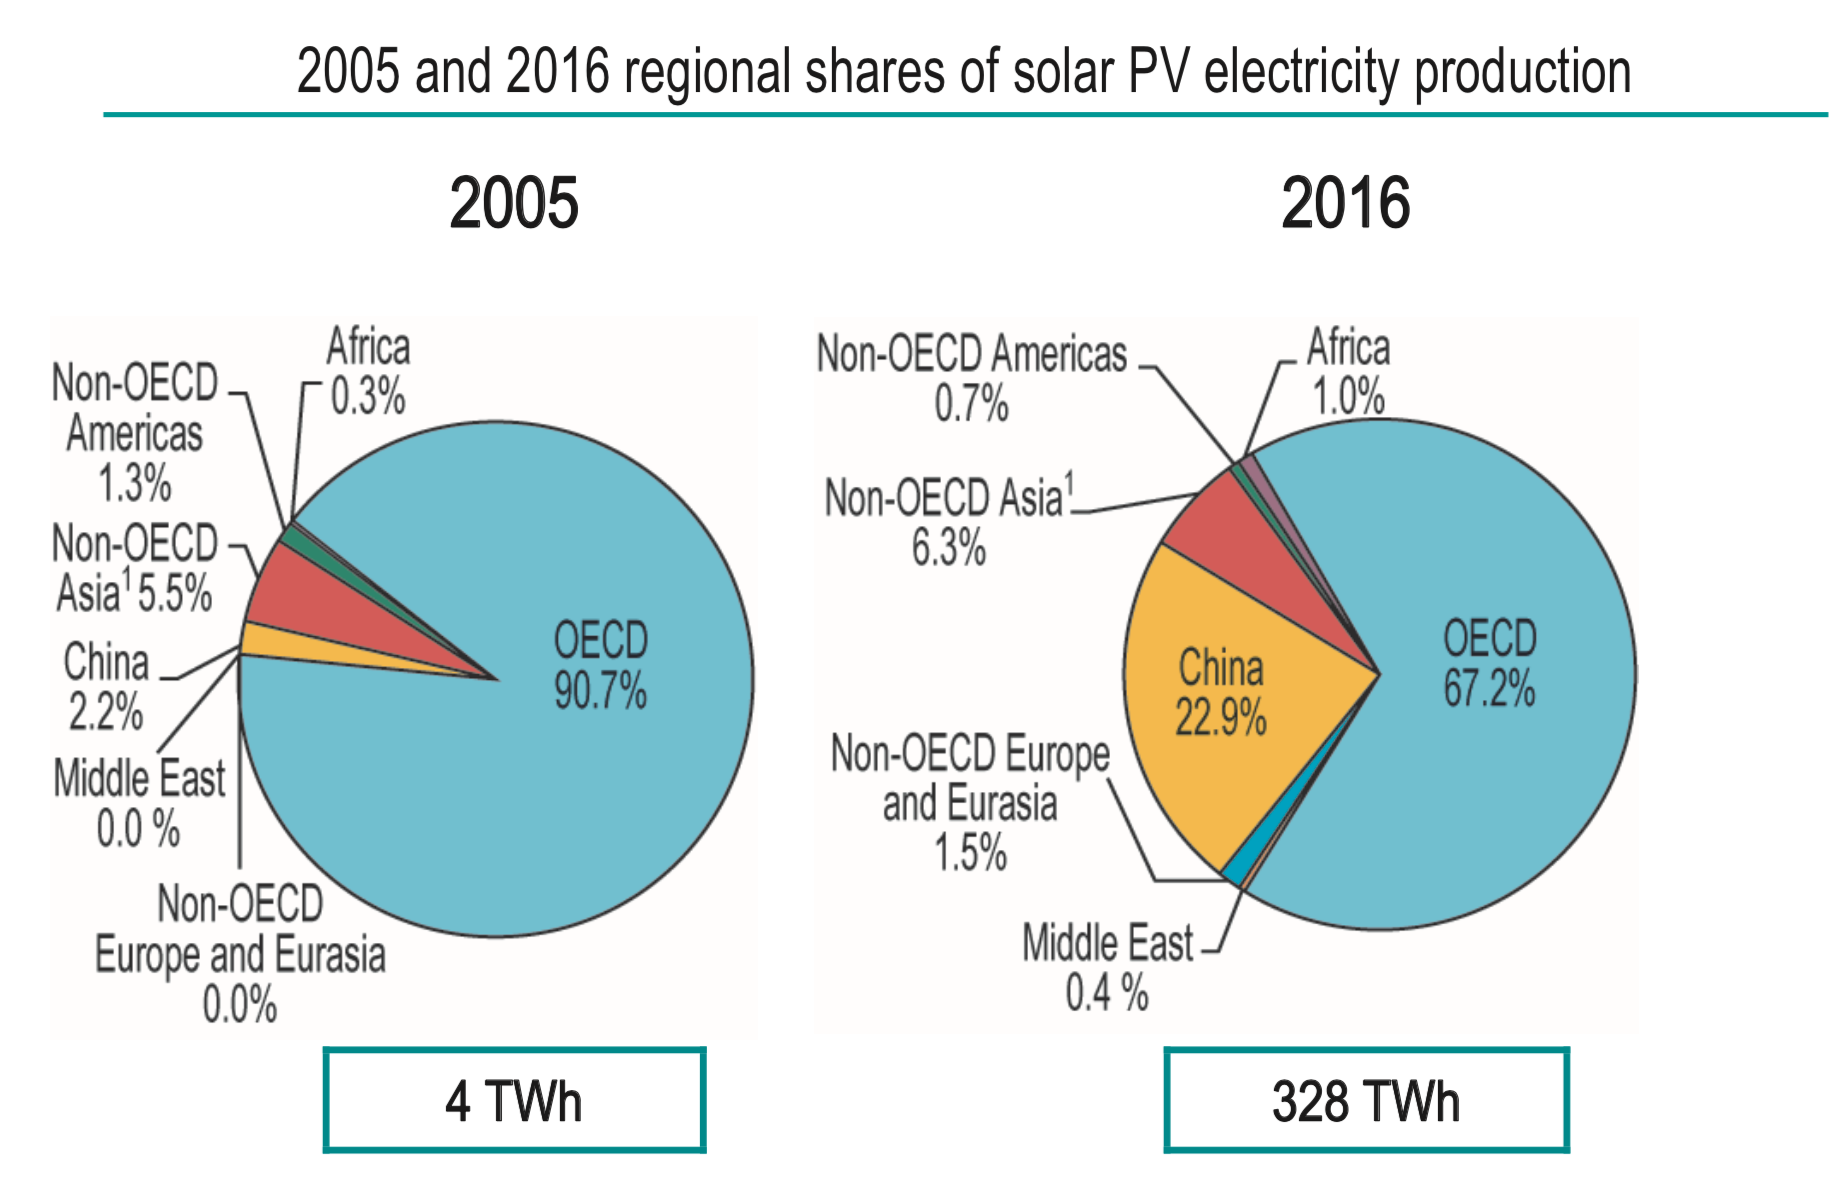 China's solar PV production